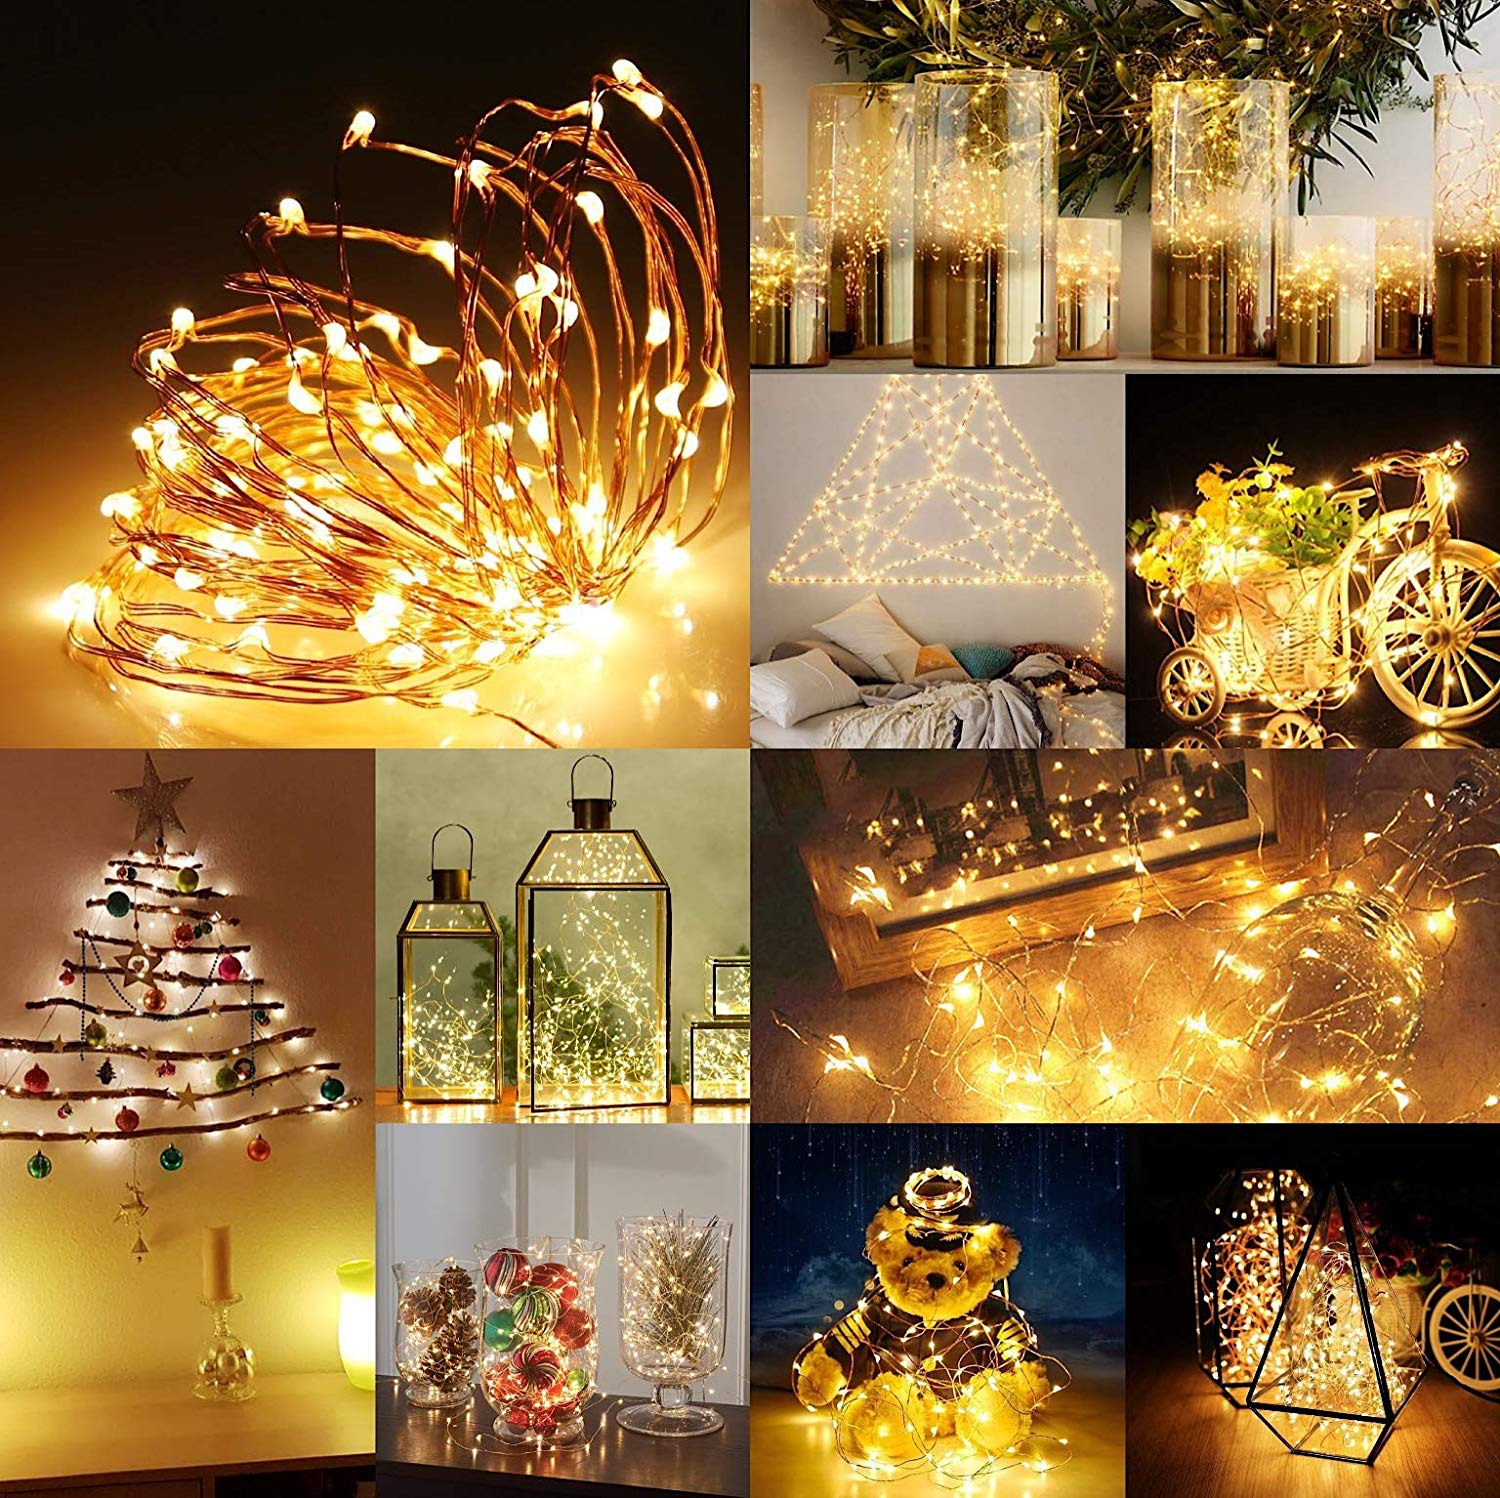 10//20LEDs Copper Wire LED Fairy String Lights Micro Rice Party Chirstmas Decor